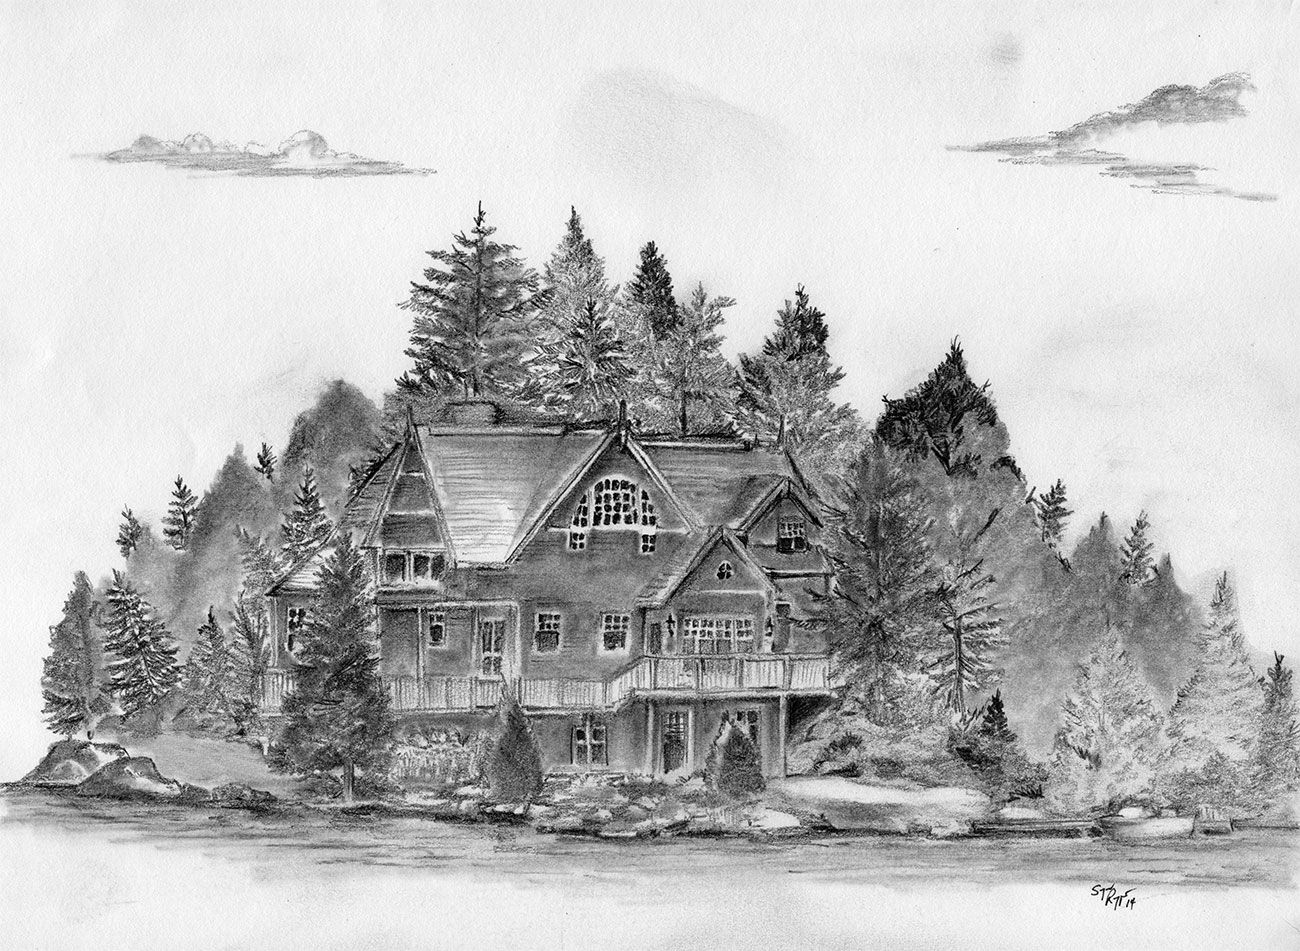 Cottage on a lake, pencil sketch on normal sketchpad paper ...